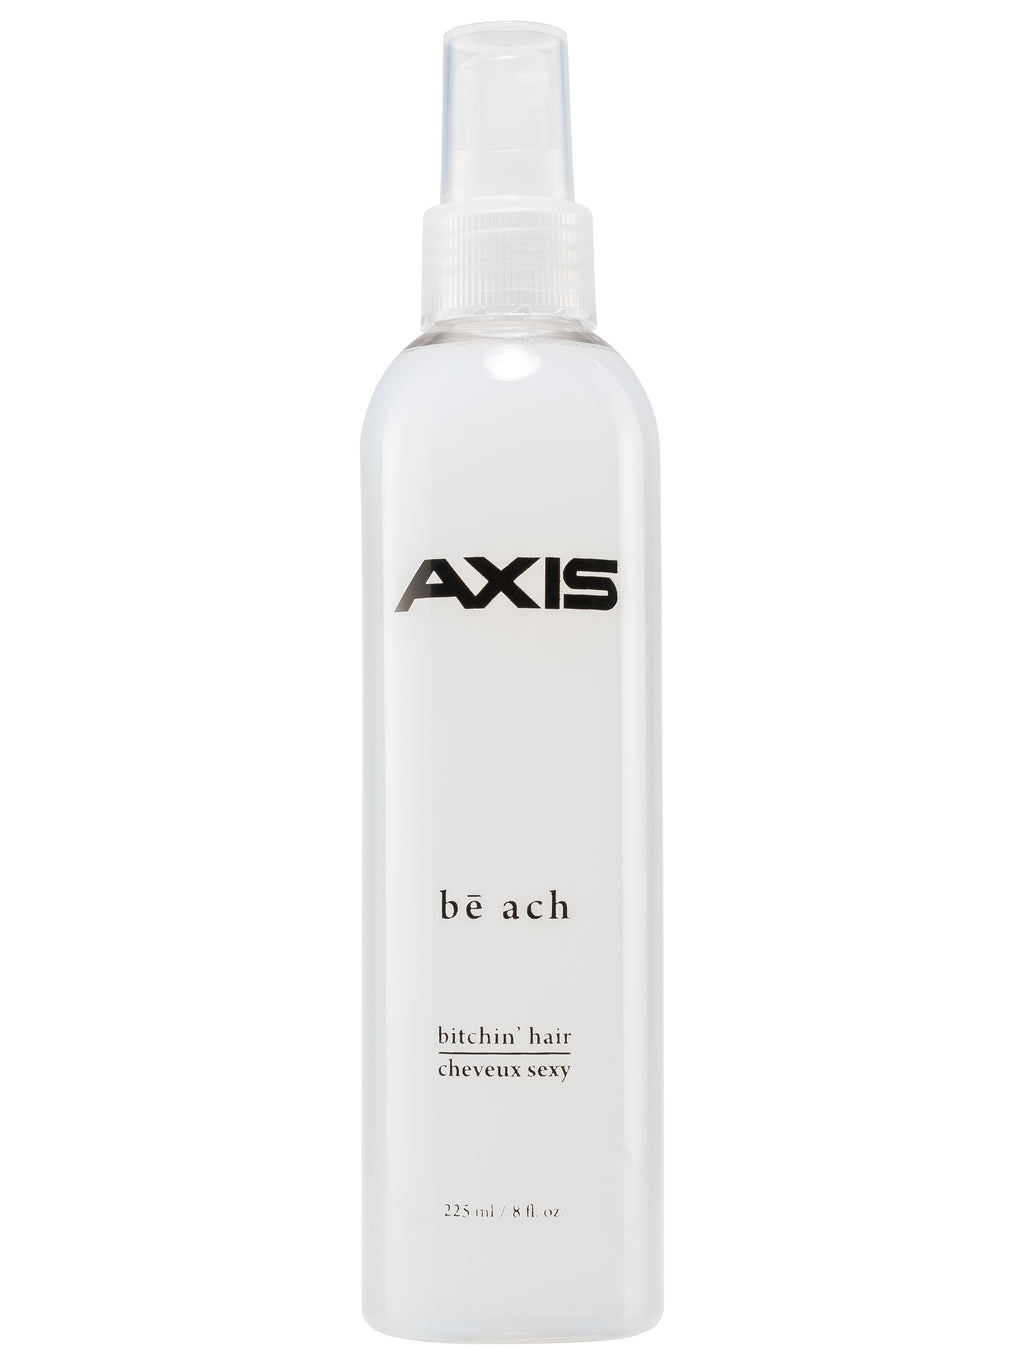 bē ach sea salt spray